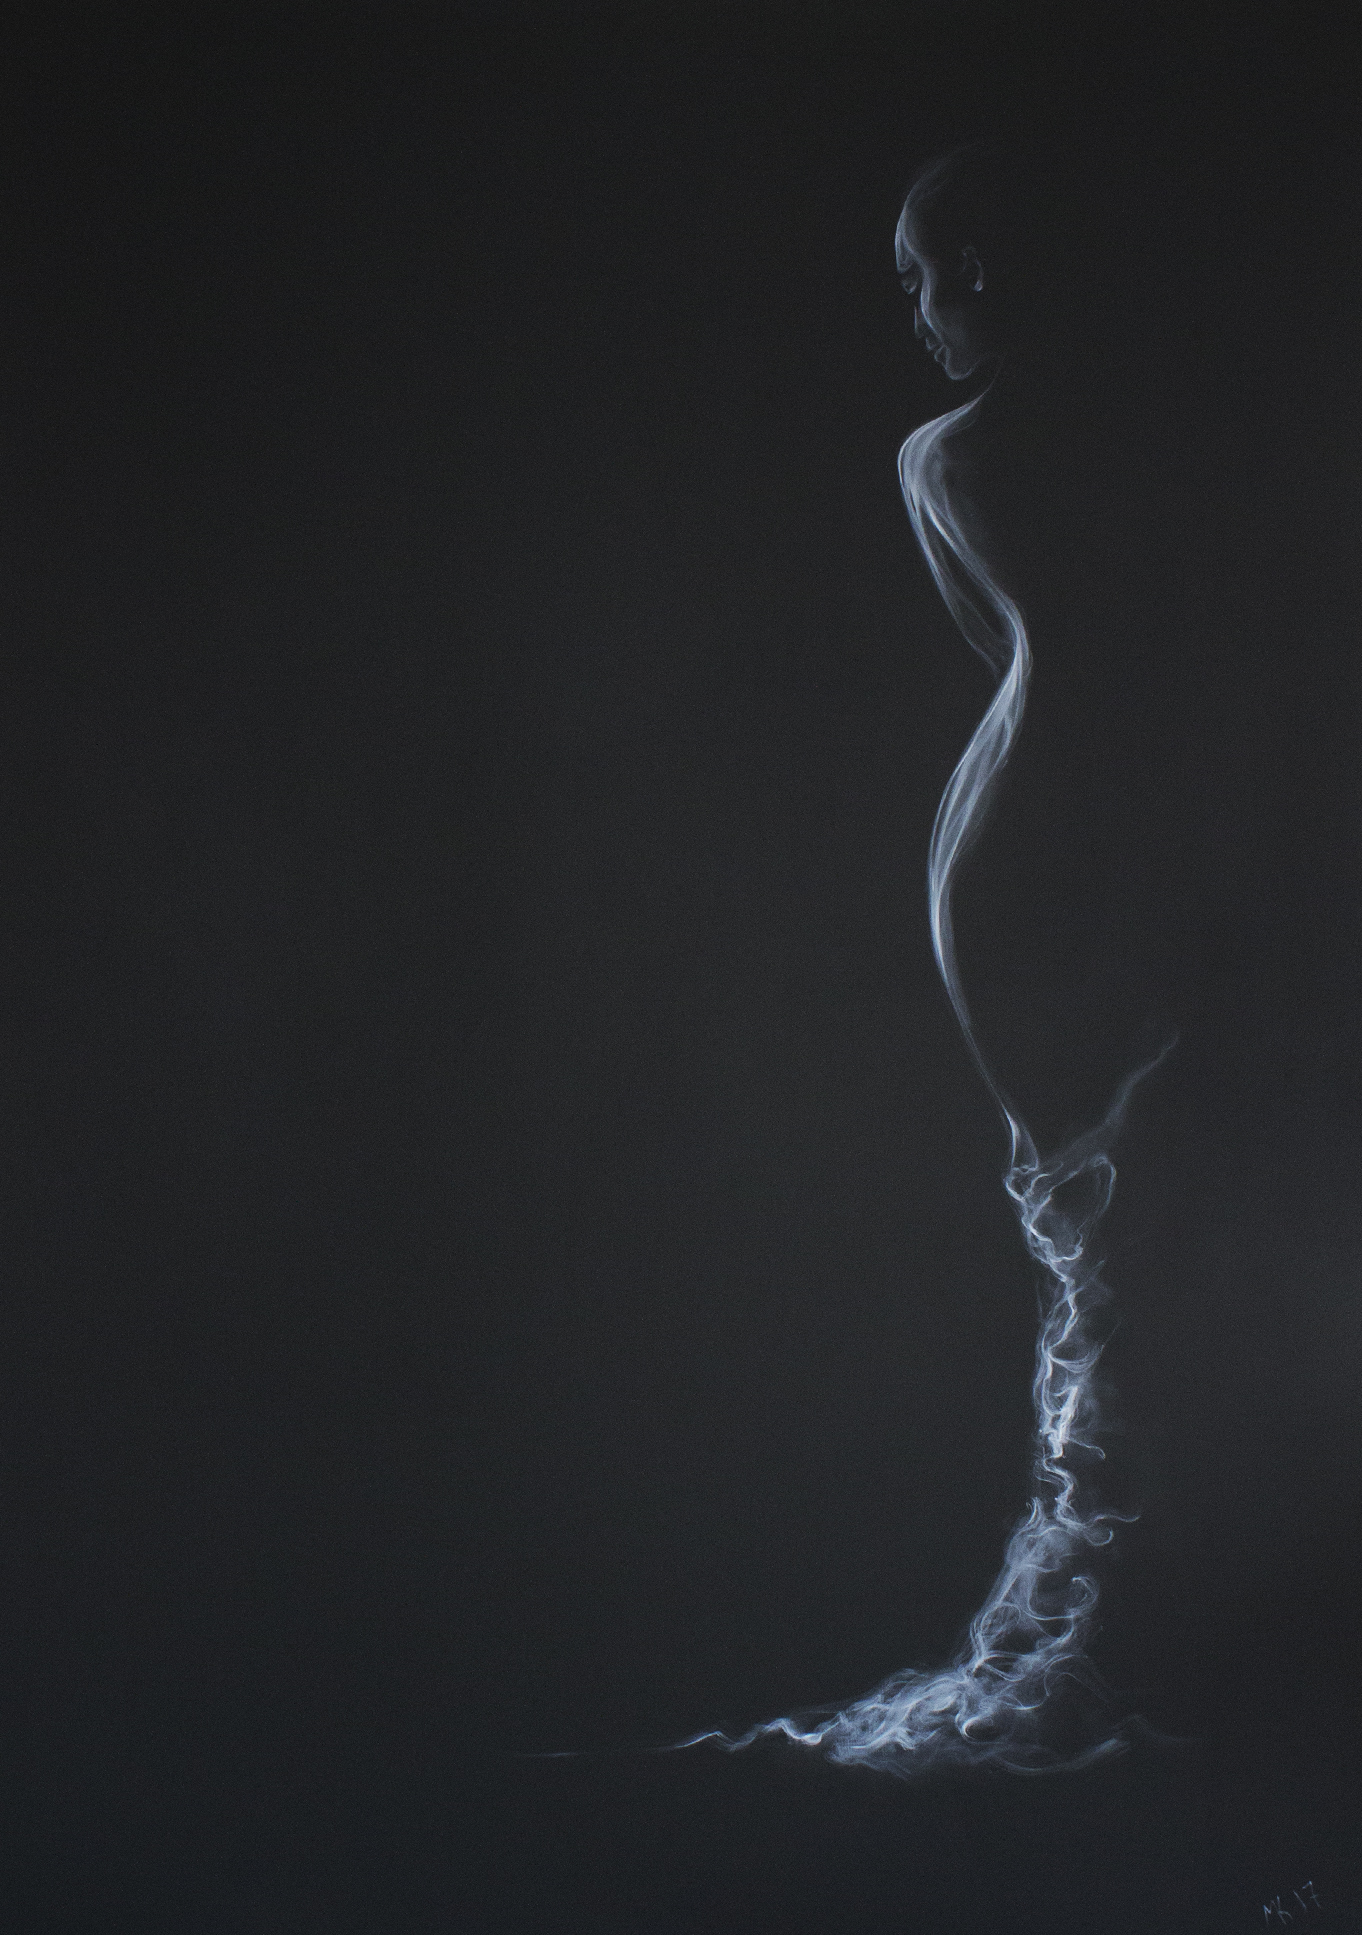 Mysterious Lady in smoke- Mher Khach